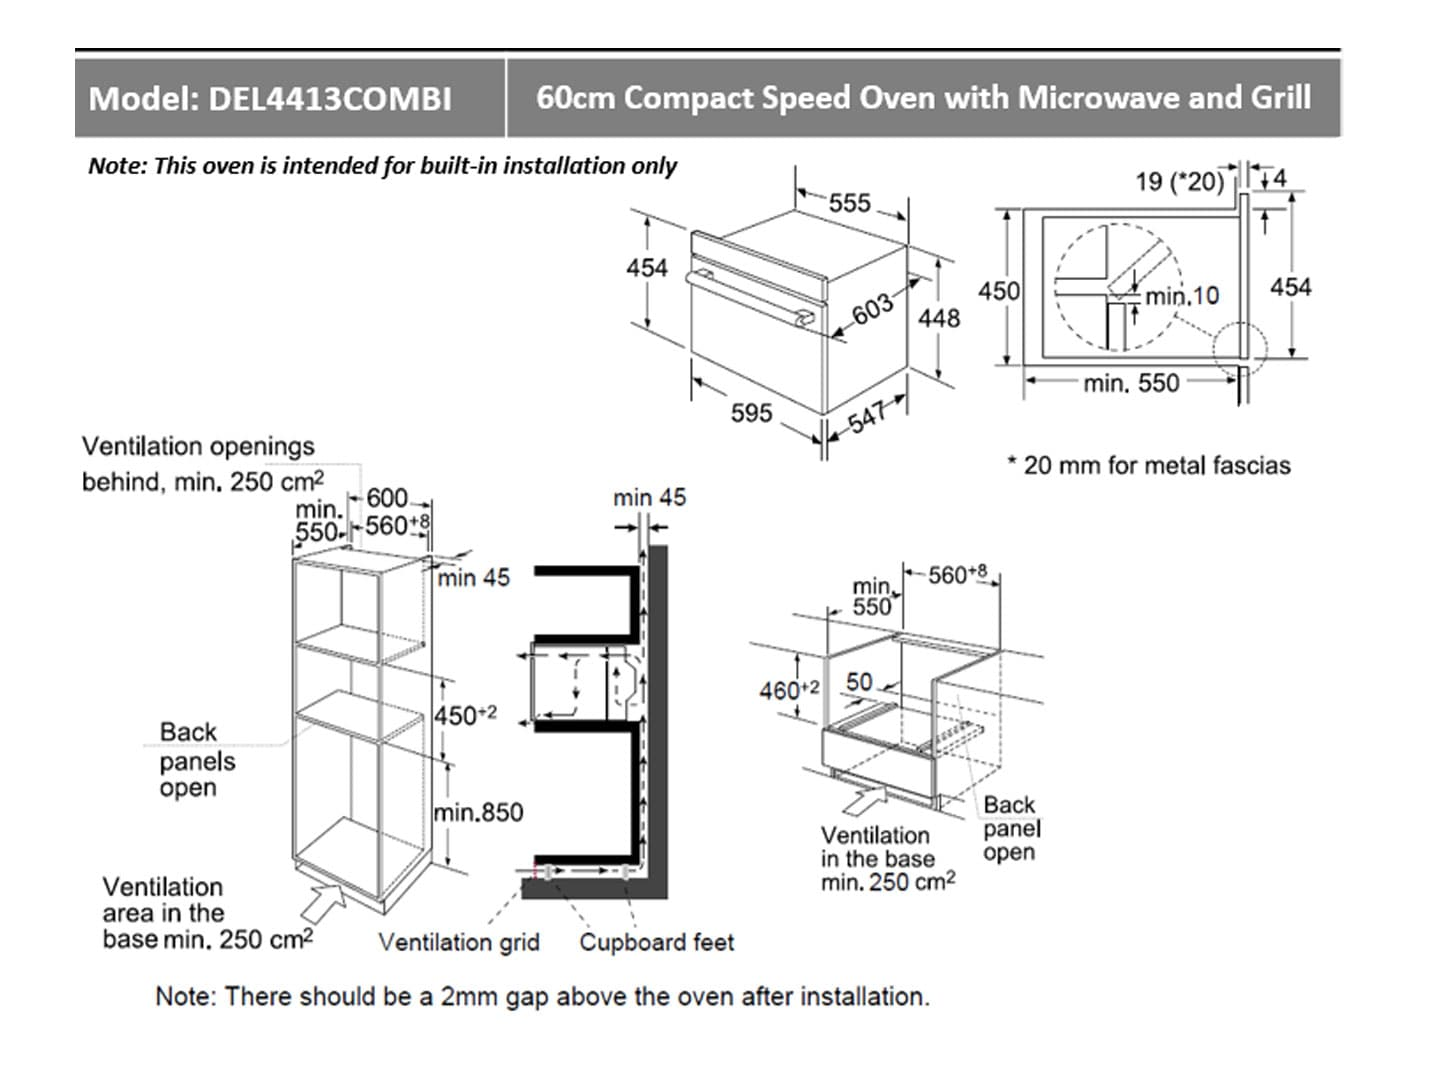 Hot Air Oven Diagram Combi Speed Oven With Microwave 43 Grill Delonghi Australia